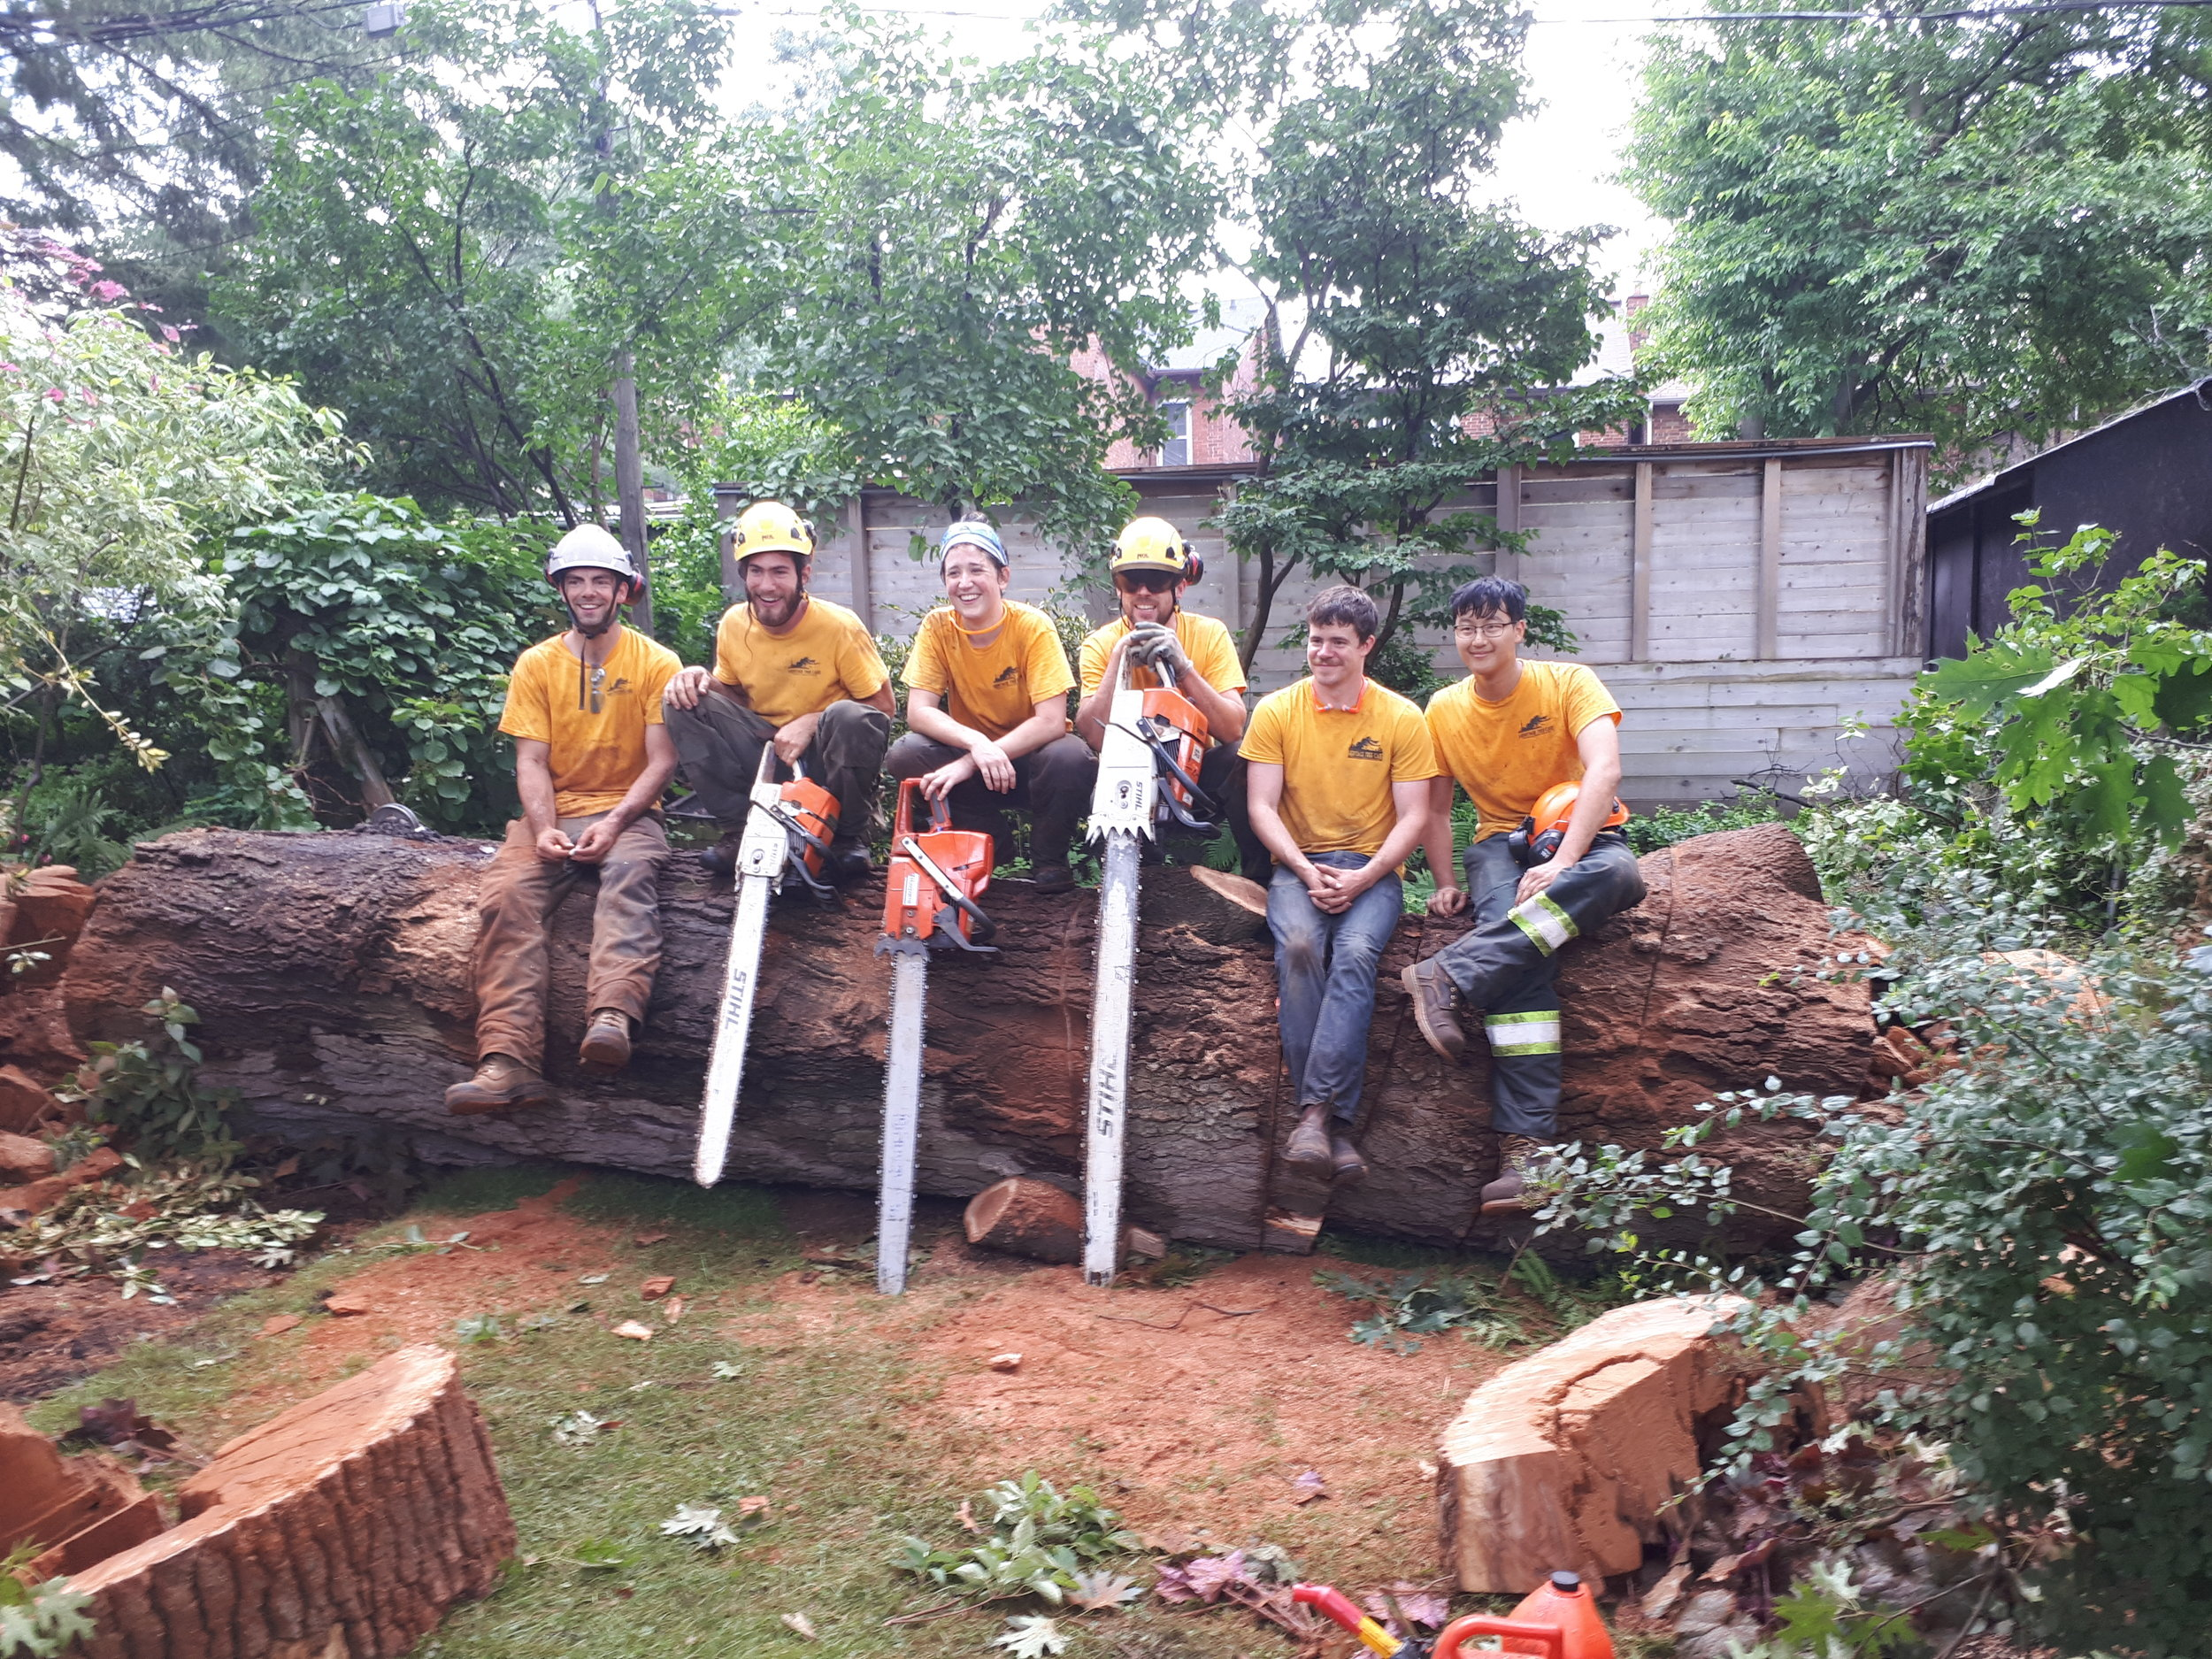 Heritage Tree Care Inc. arborists, climbers and groundies, all the crew together